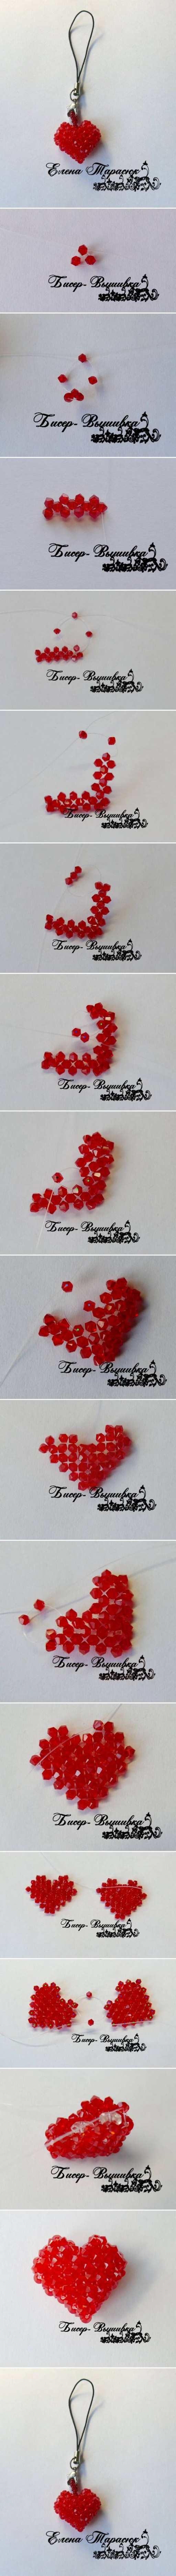 How to make beads or pearl Heart Ornament step by step DIY tutorial instructions